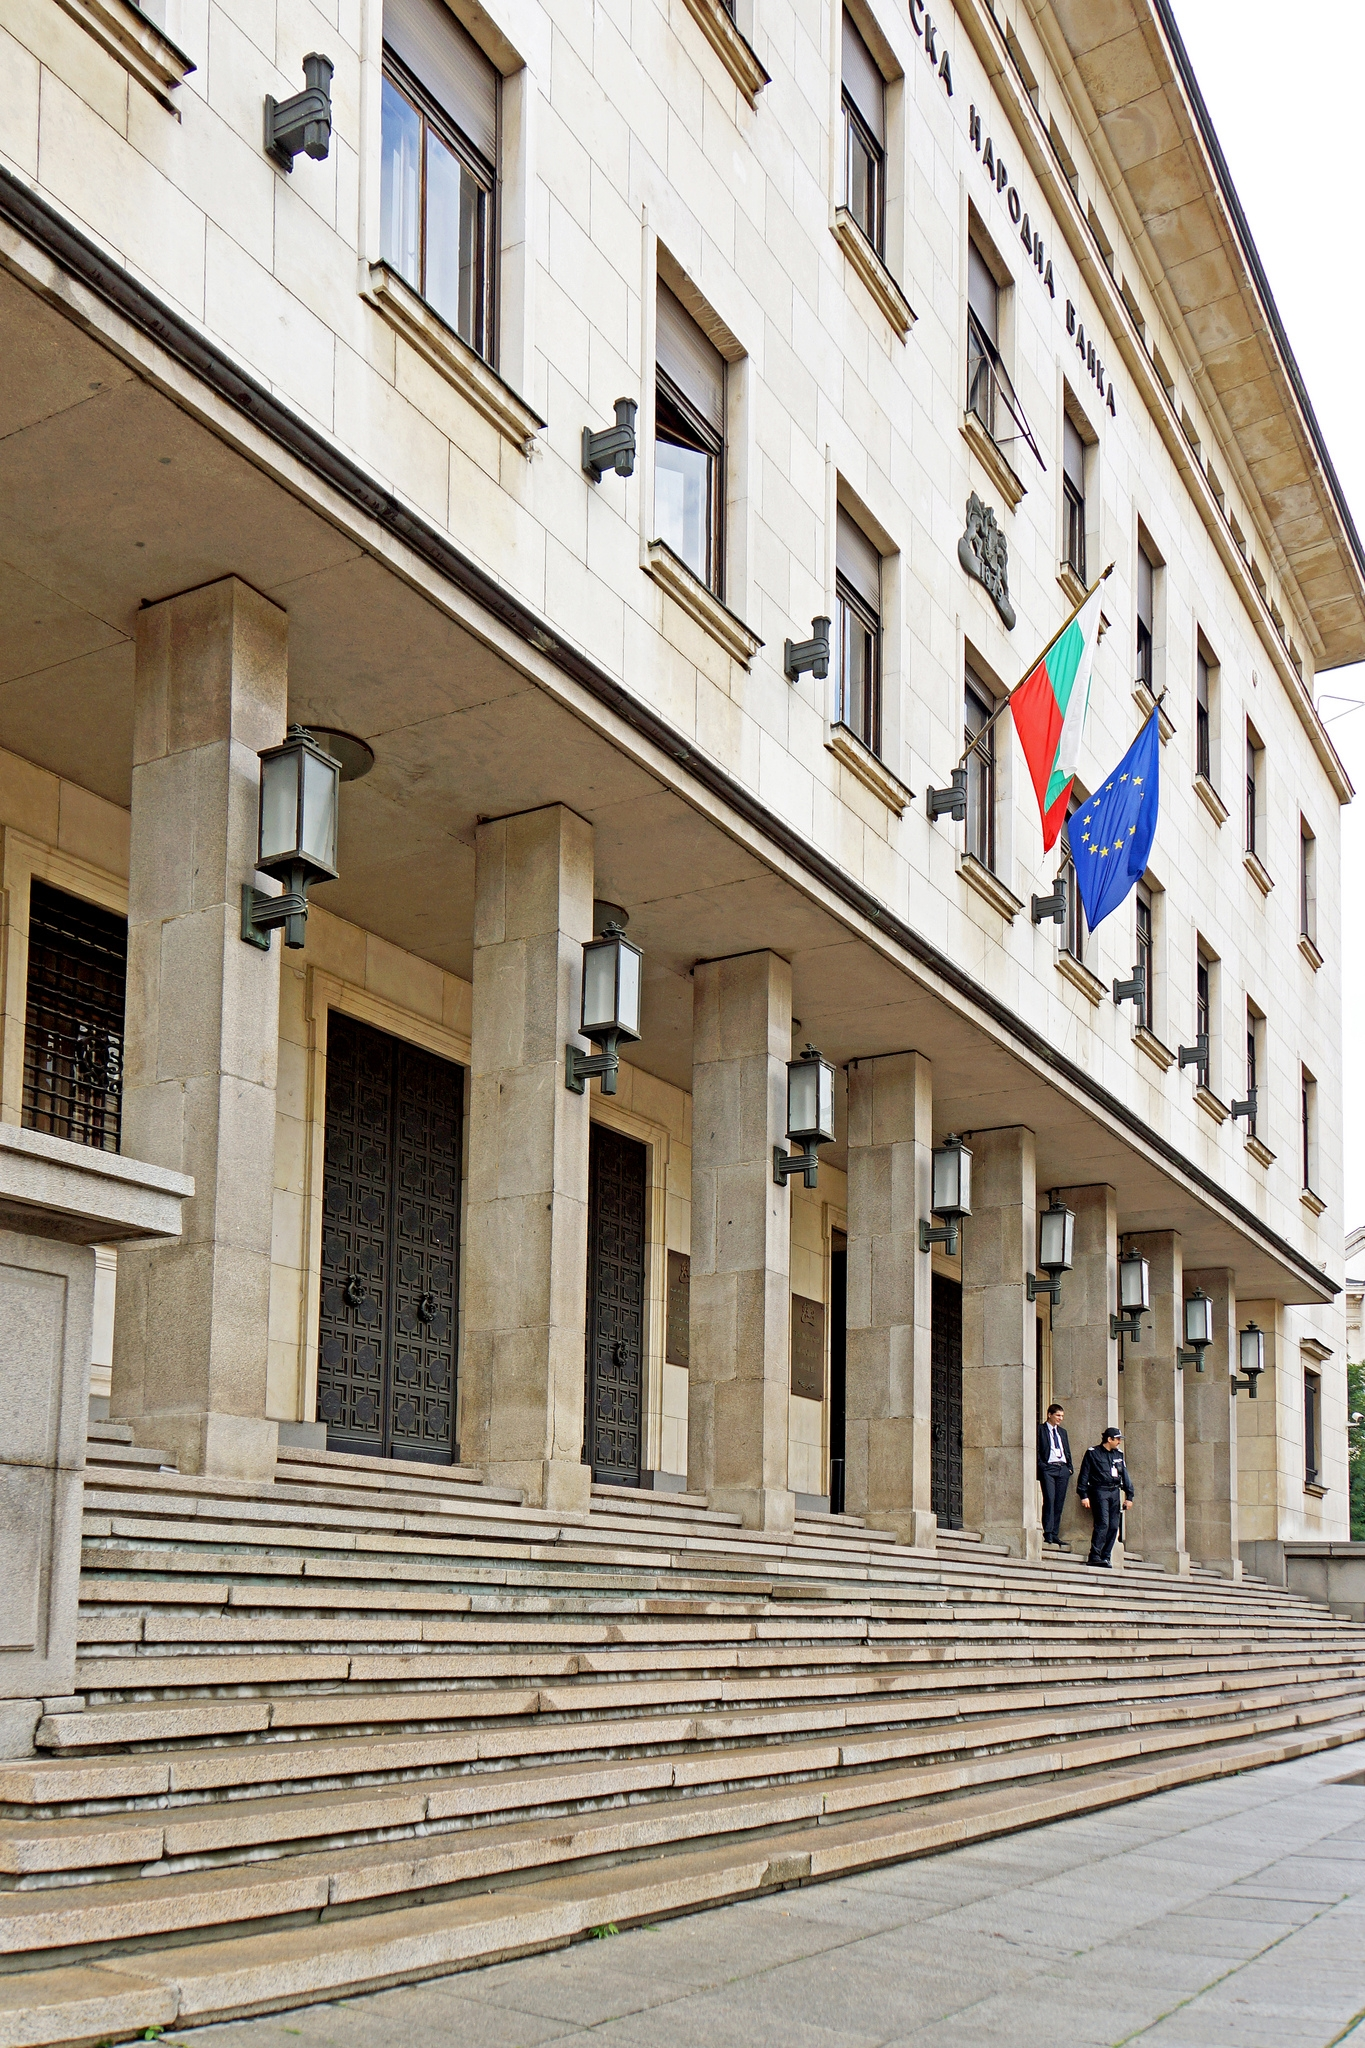 FDI in Bulgaria nearly halves in Jan-Nov